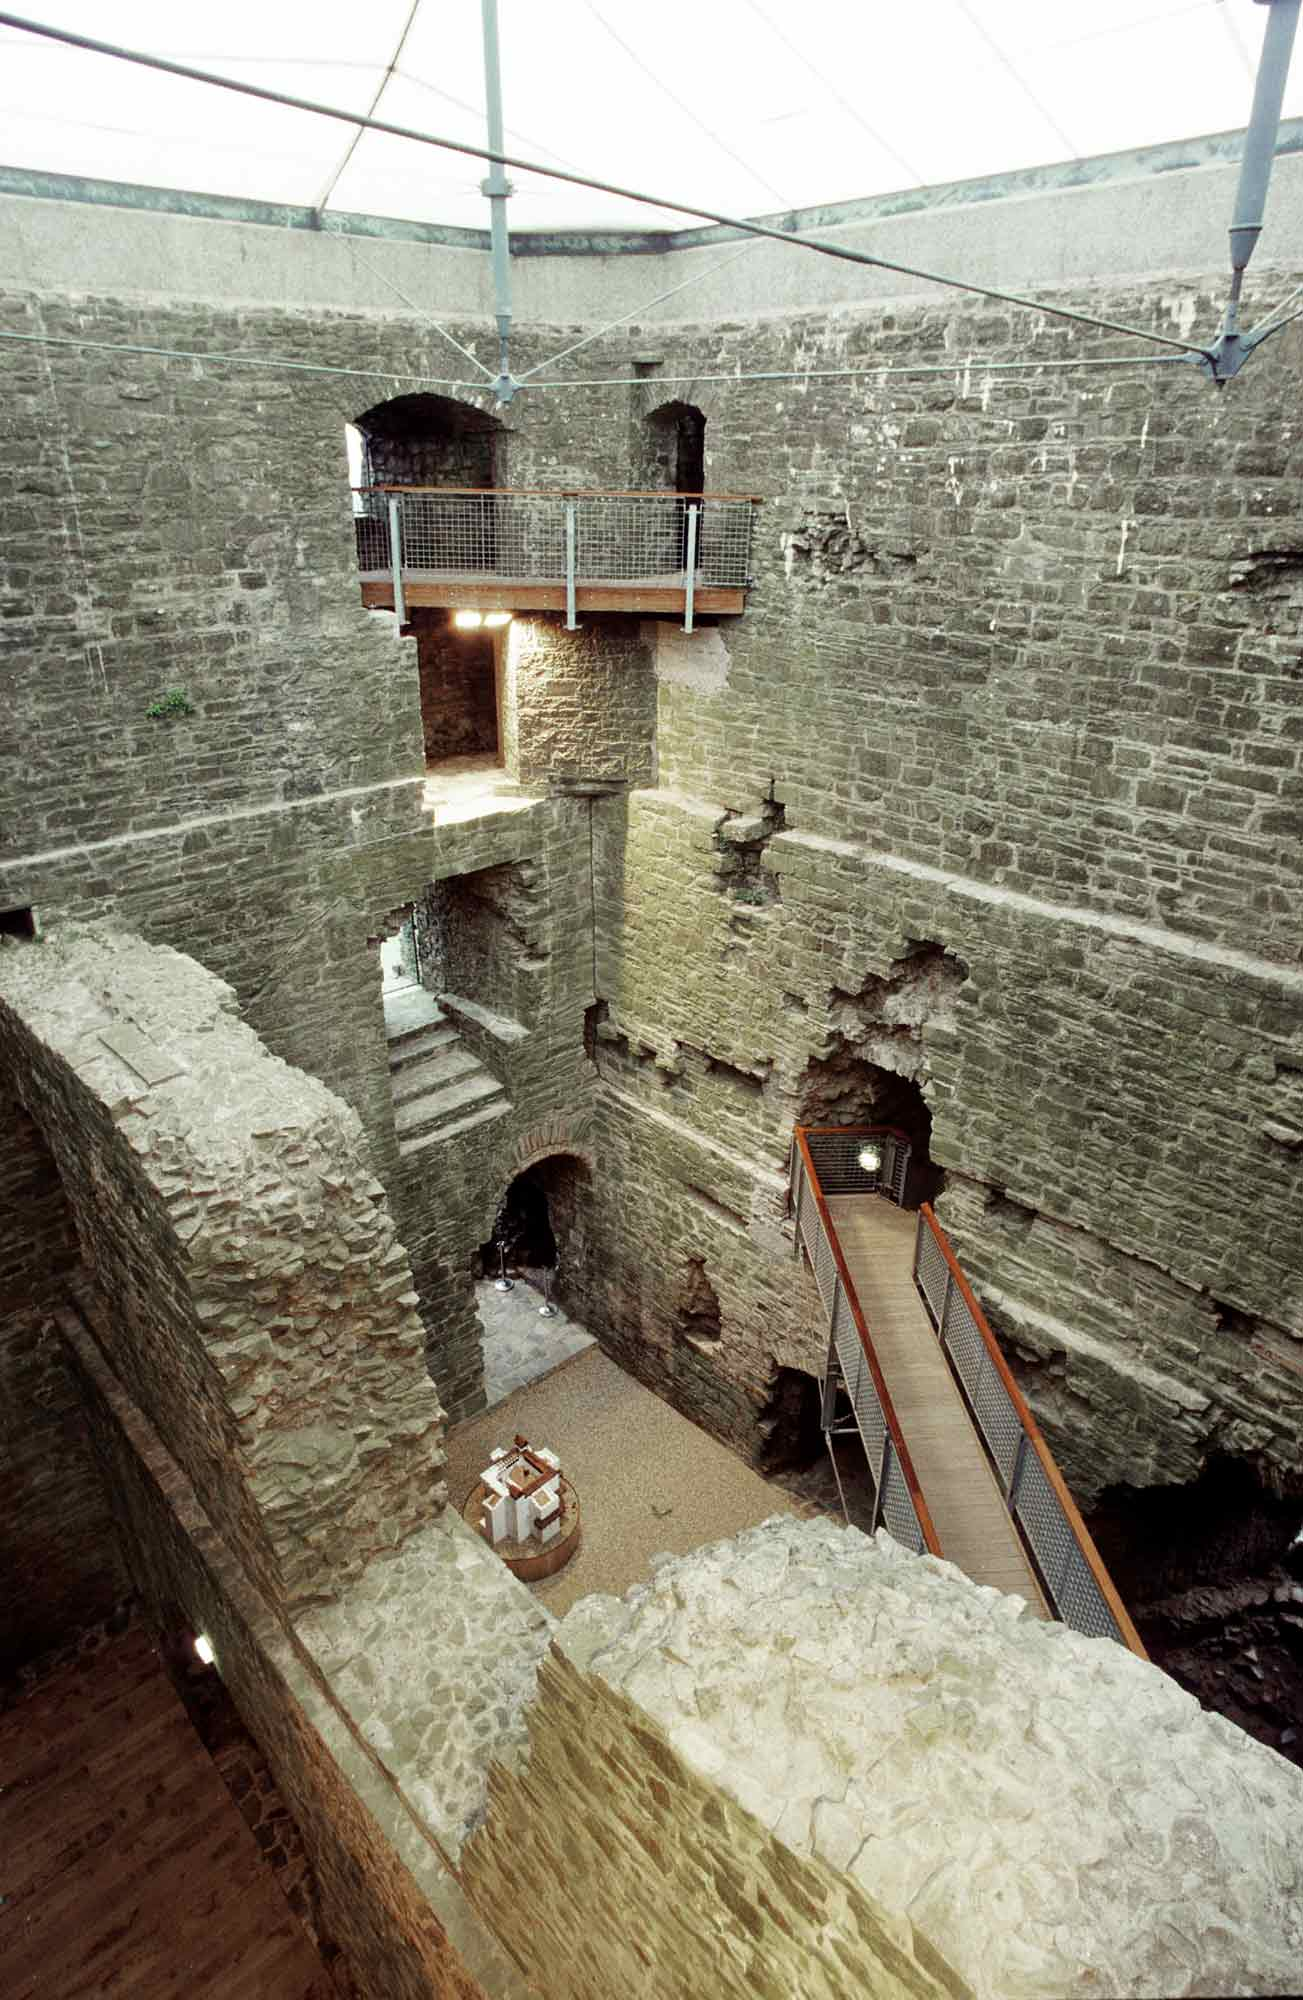 Looking down from the third floor of the Keep